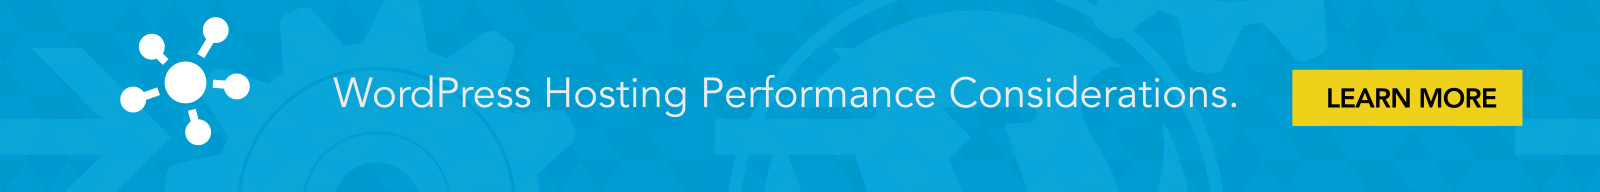 WordPress Hosting Performance Considerations